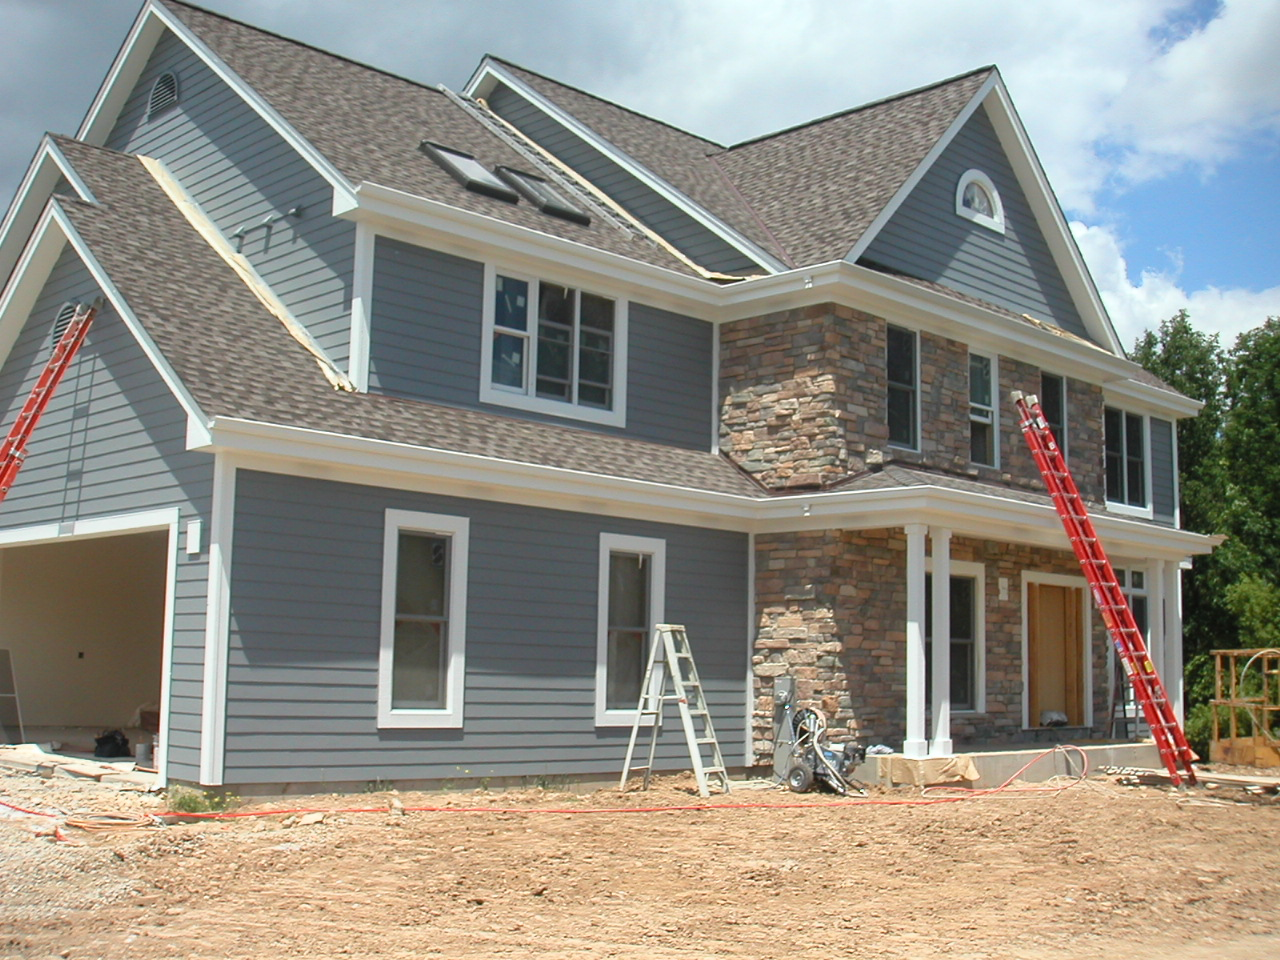 chic hardie plank siding in gray matched with white trim board and single hung window for home exterior design ideas